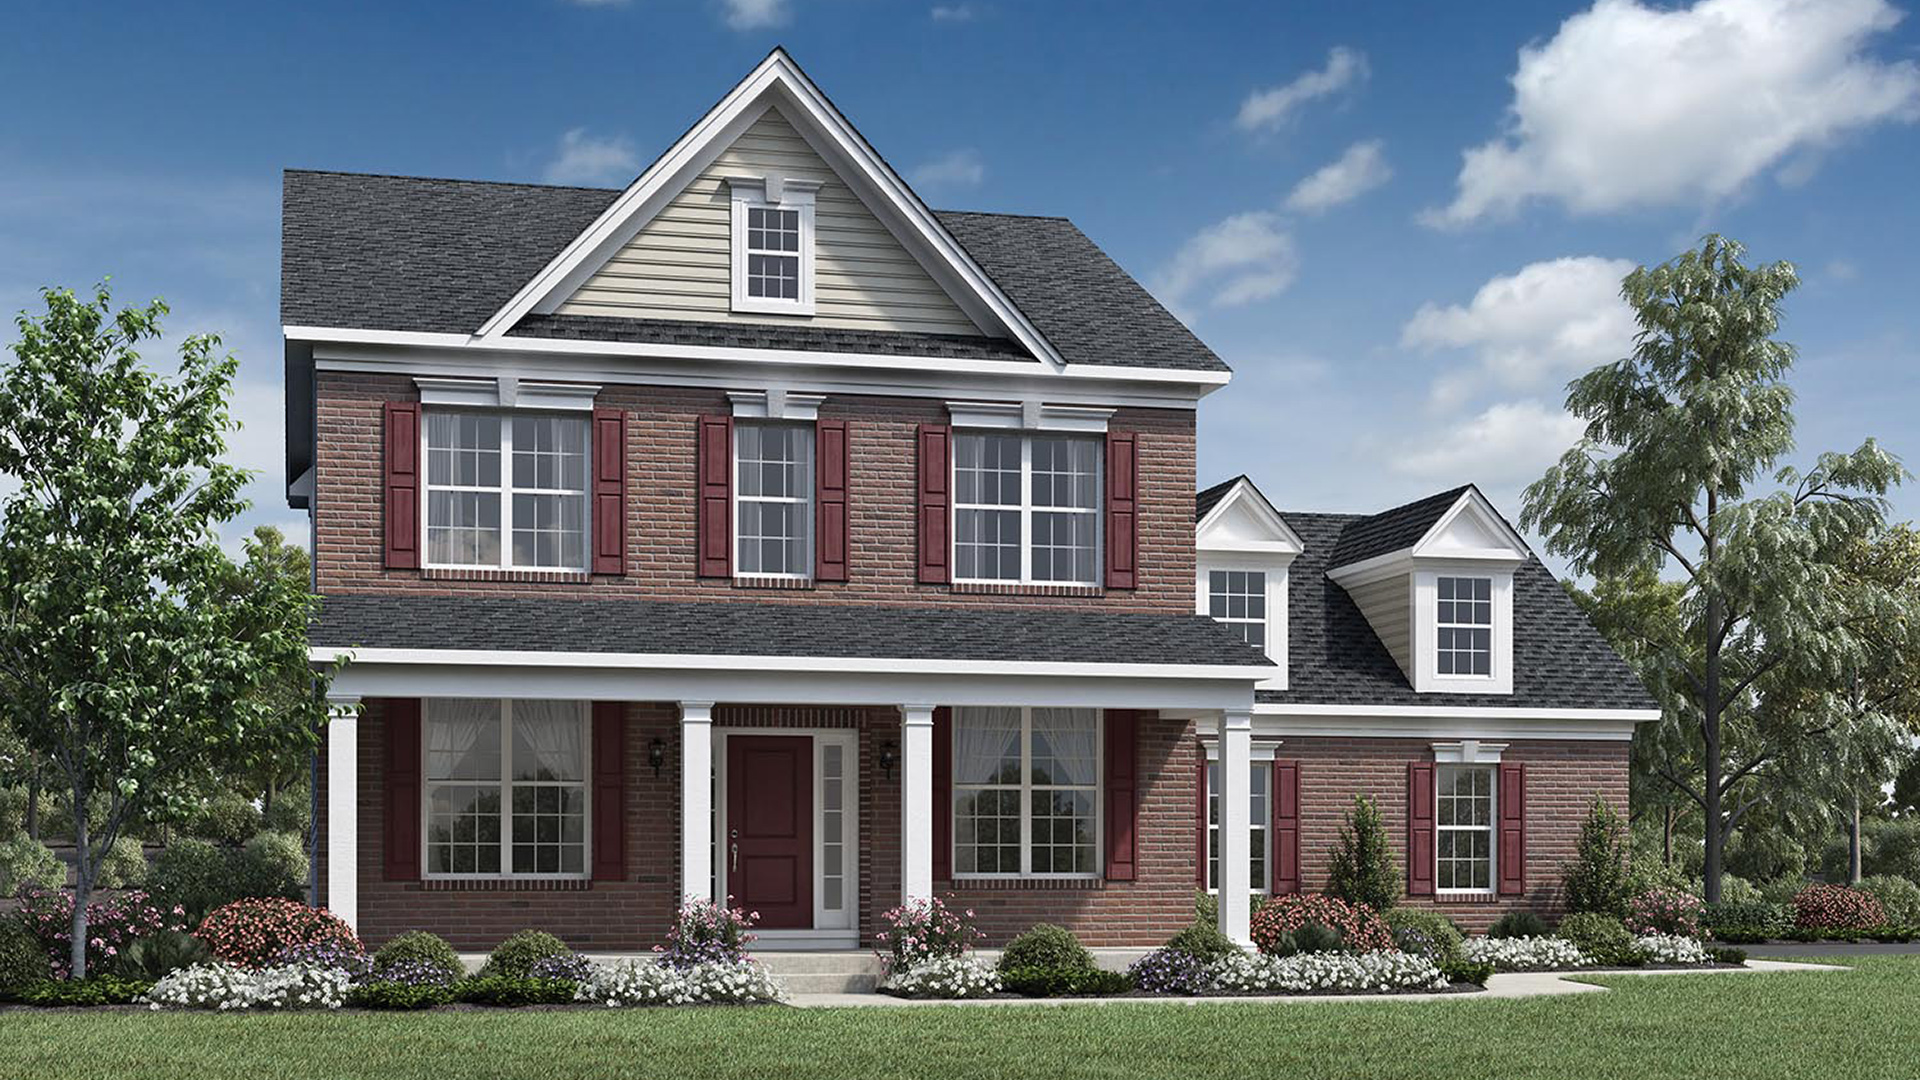 New britain woods the parker home design for Parker house designs